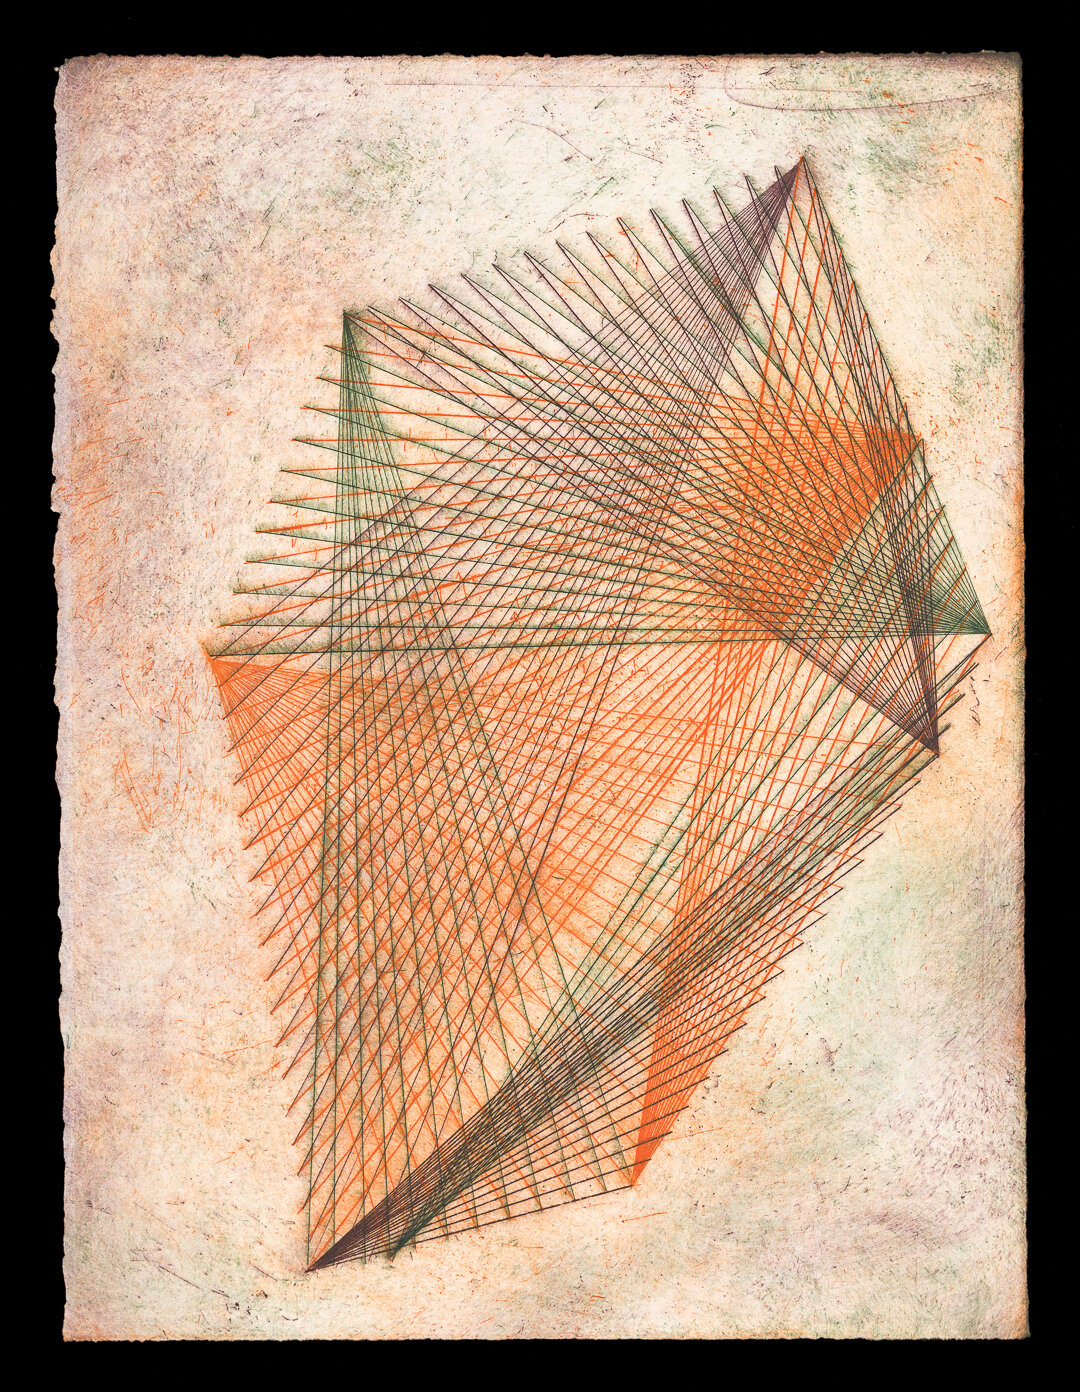 Net 2 (2019), three plate etching, edition 2/5, 38 x 29 cm